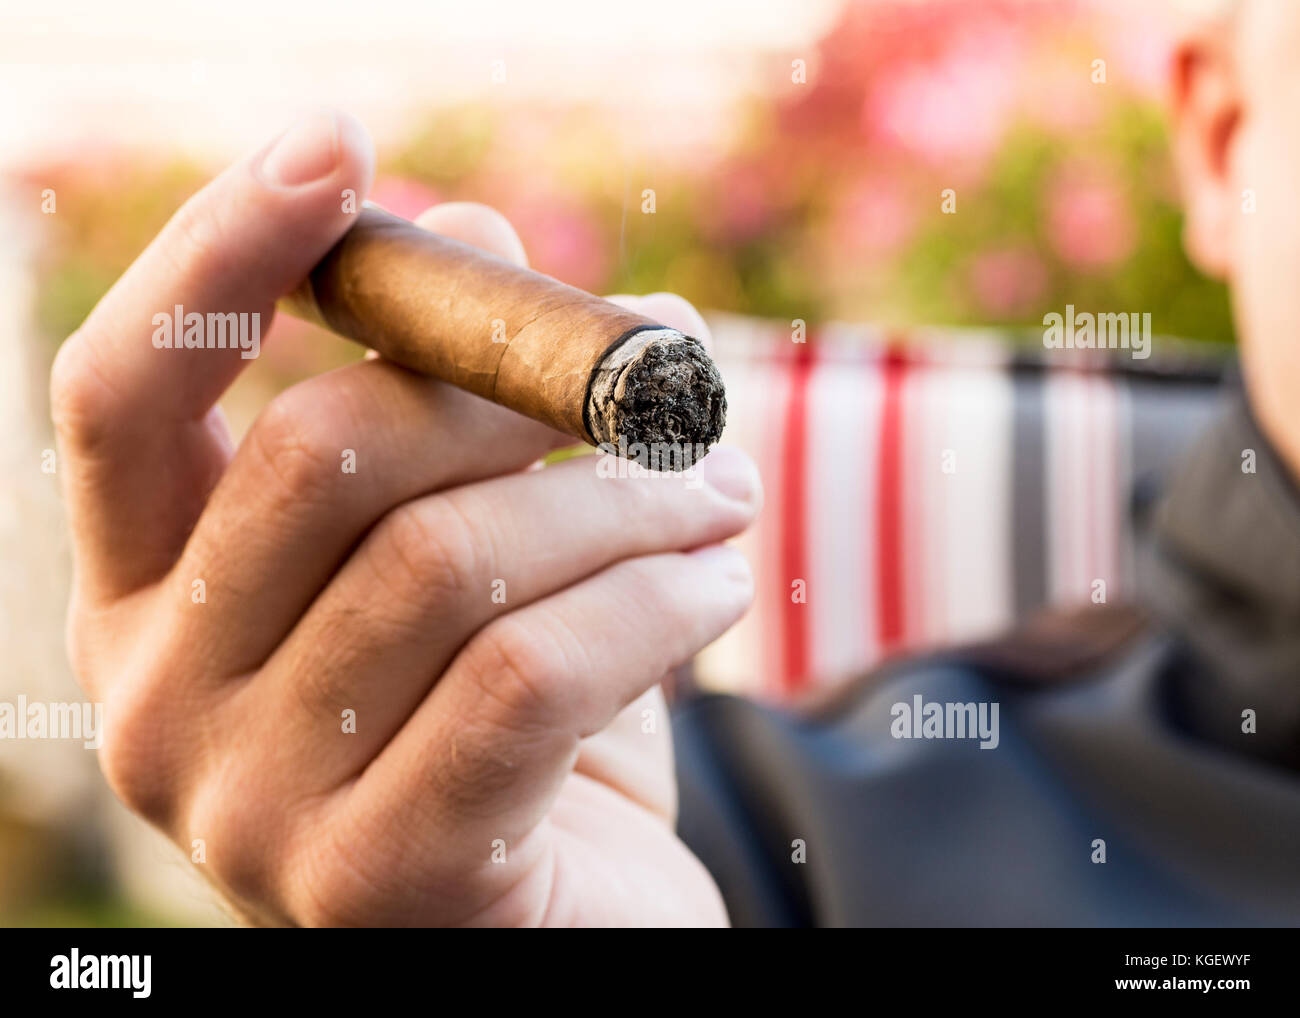 Detail Of The Hand Of A Smoking Man Holding A Burning Cigar In A Garden With